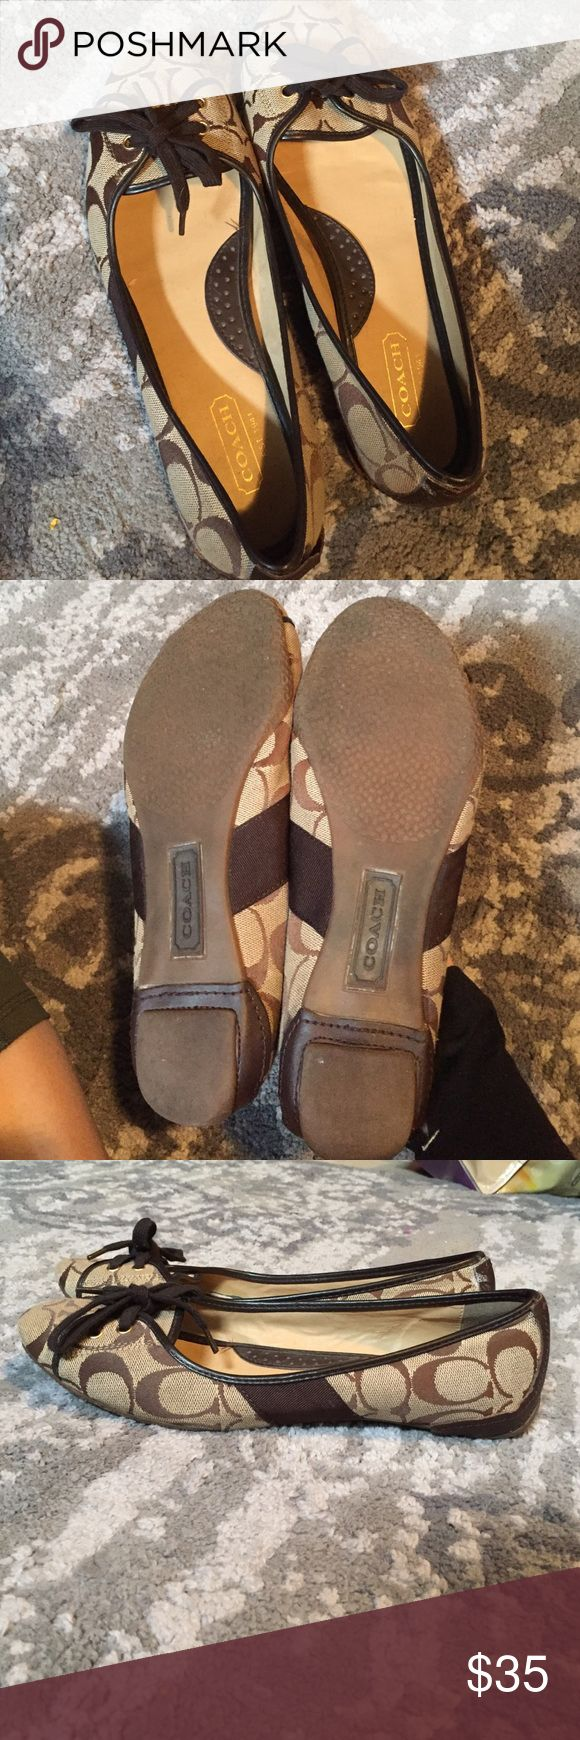 Coach Flats Minimal wear, good condition. It says it's a size 10 on the inside but they definitely fit like a small 8. Very Cute & Authentic! Coach Shoes Flats & Loafers